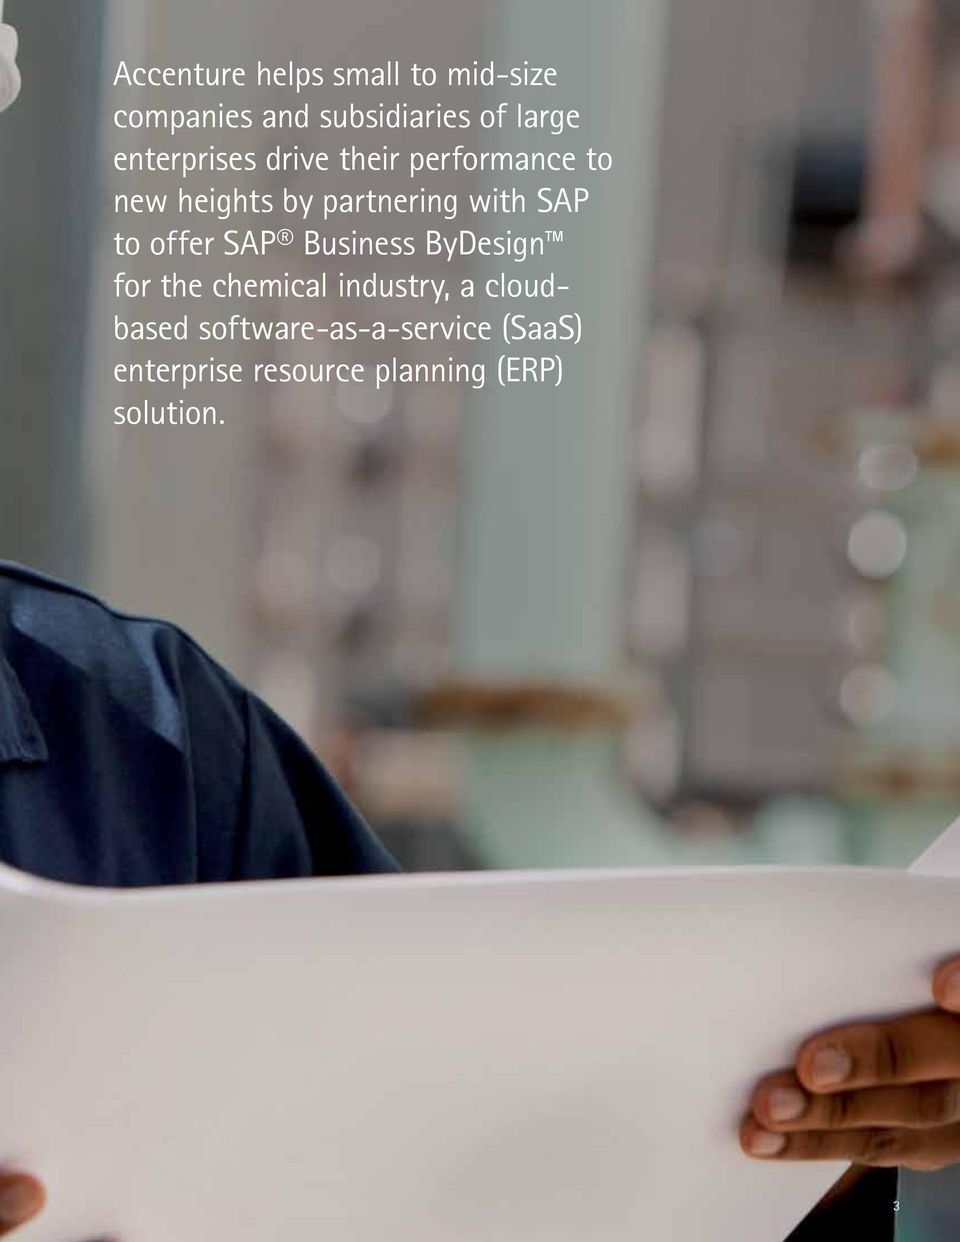 SAP to offer SAP Business ByDesign for the chemical industry, a